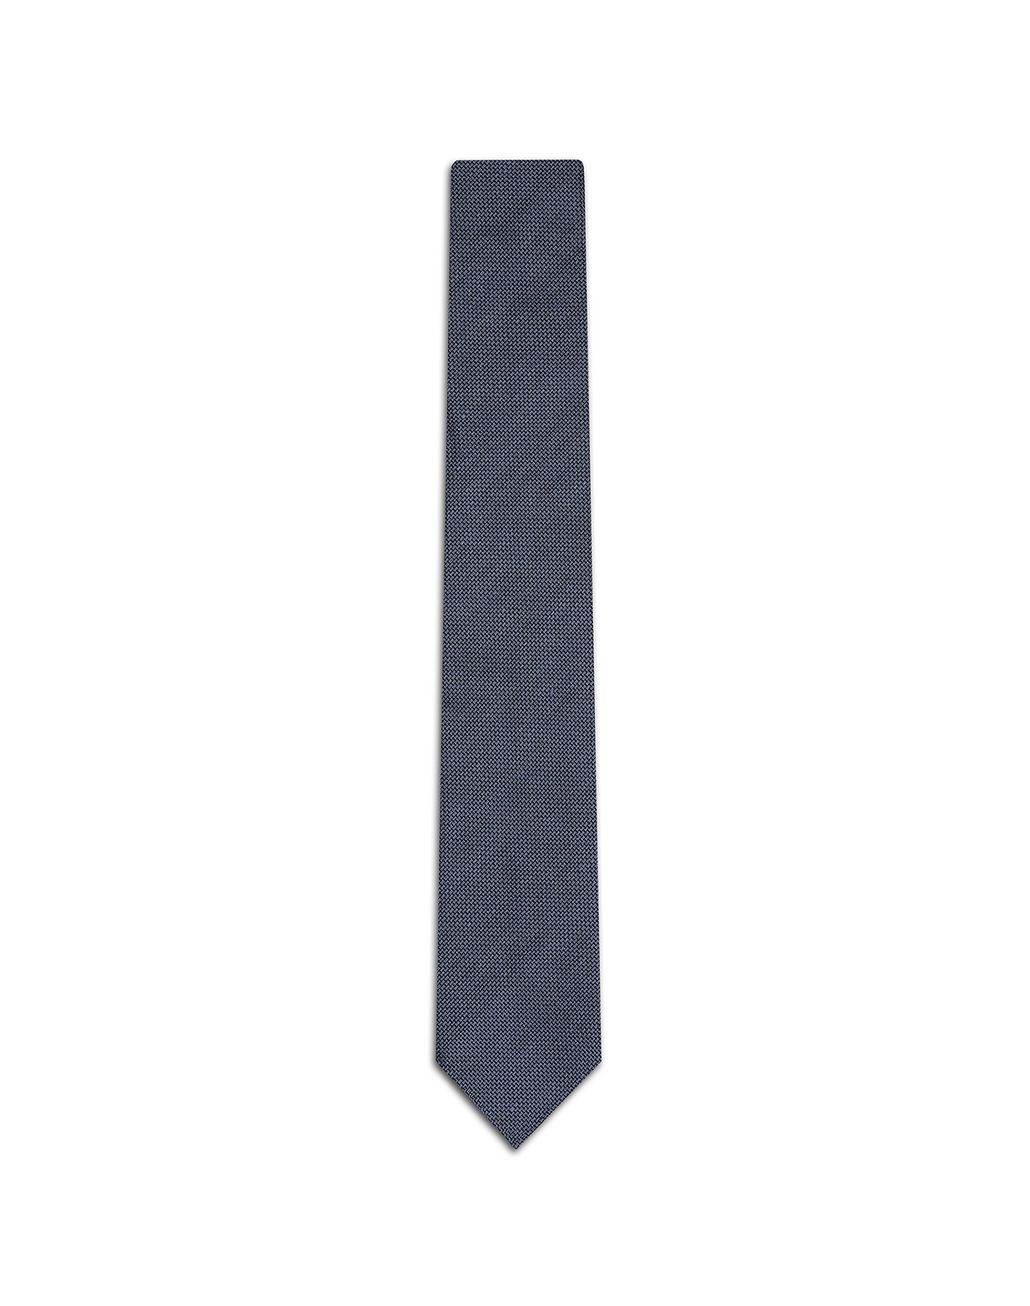 BRIONI Bluette Unlined Tie Tie Man f